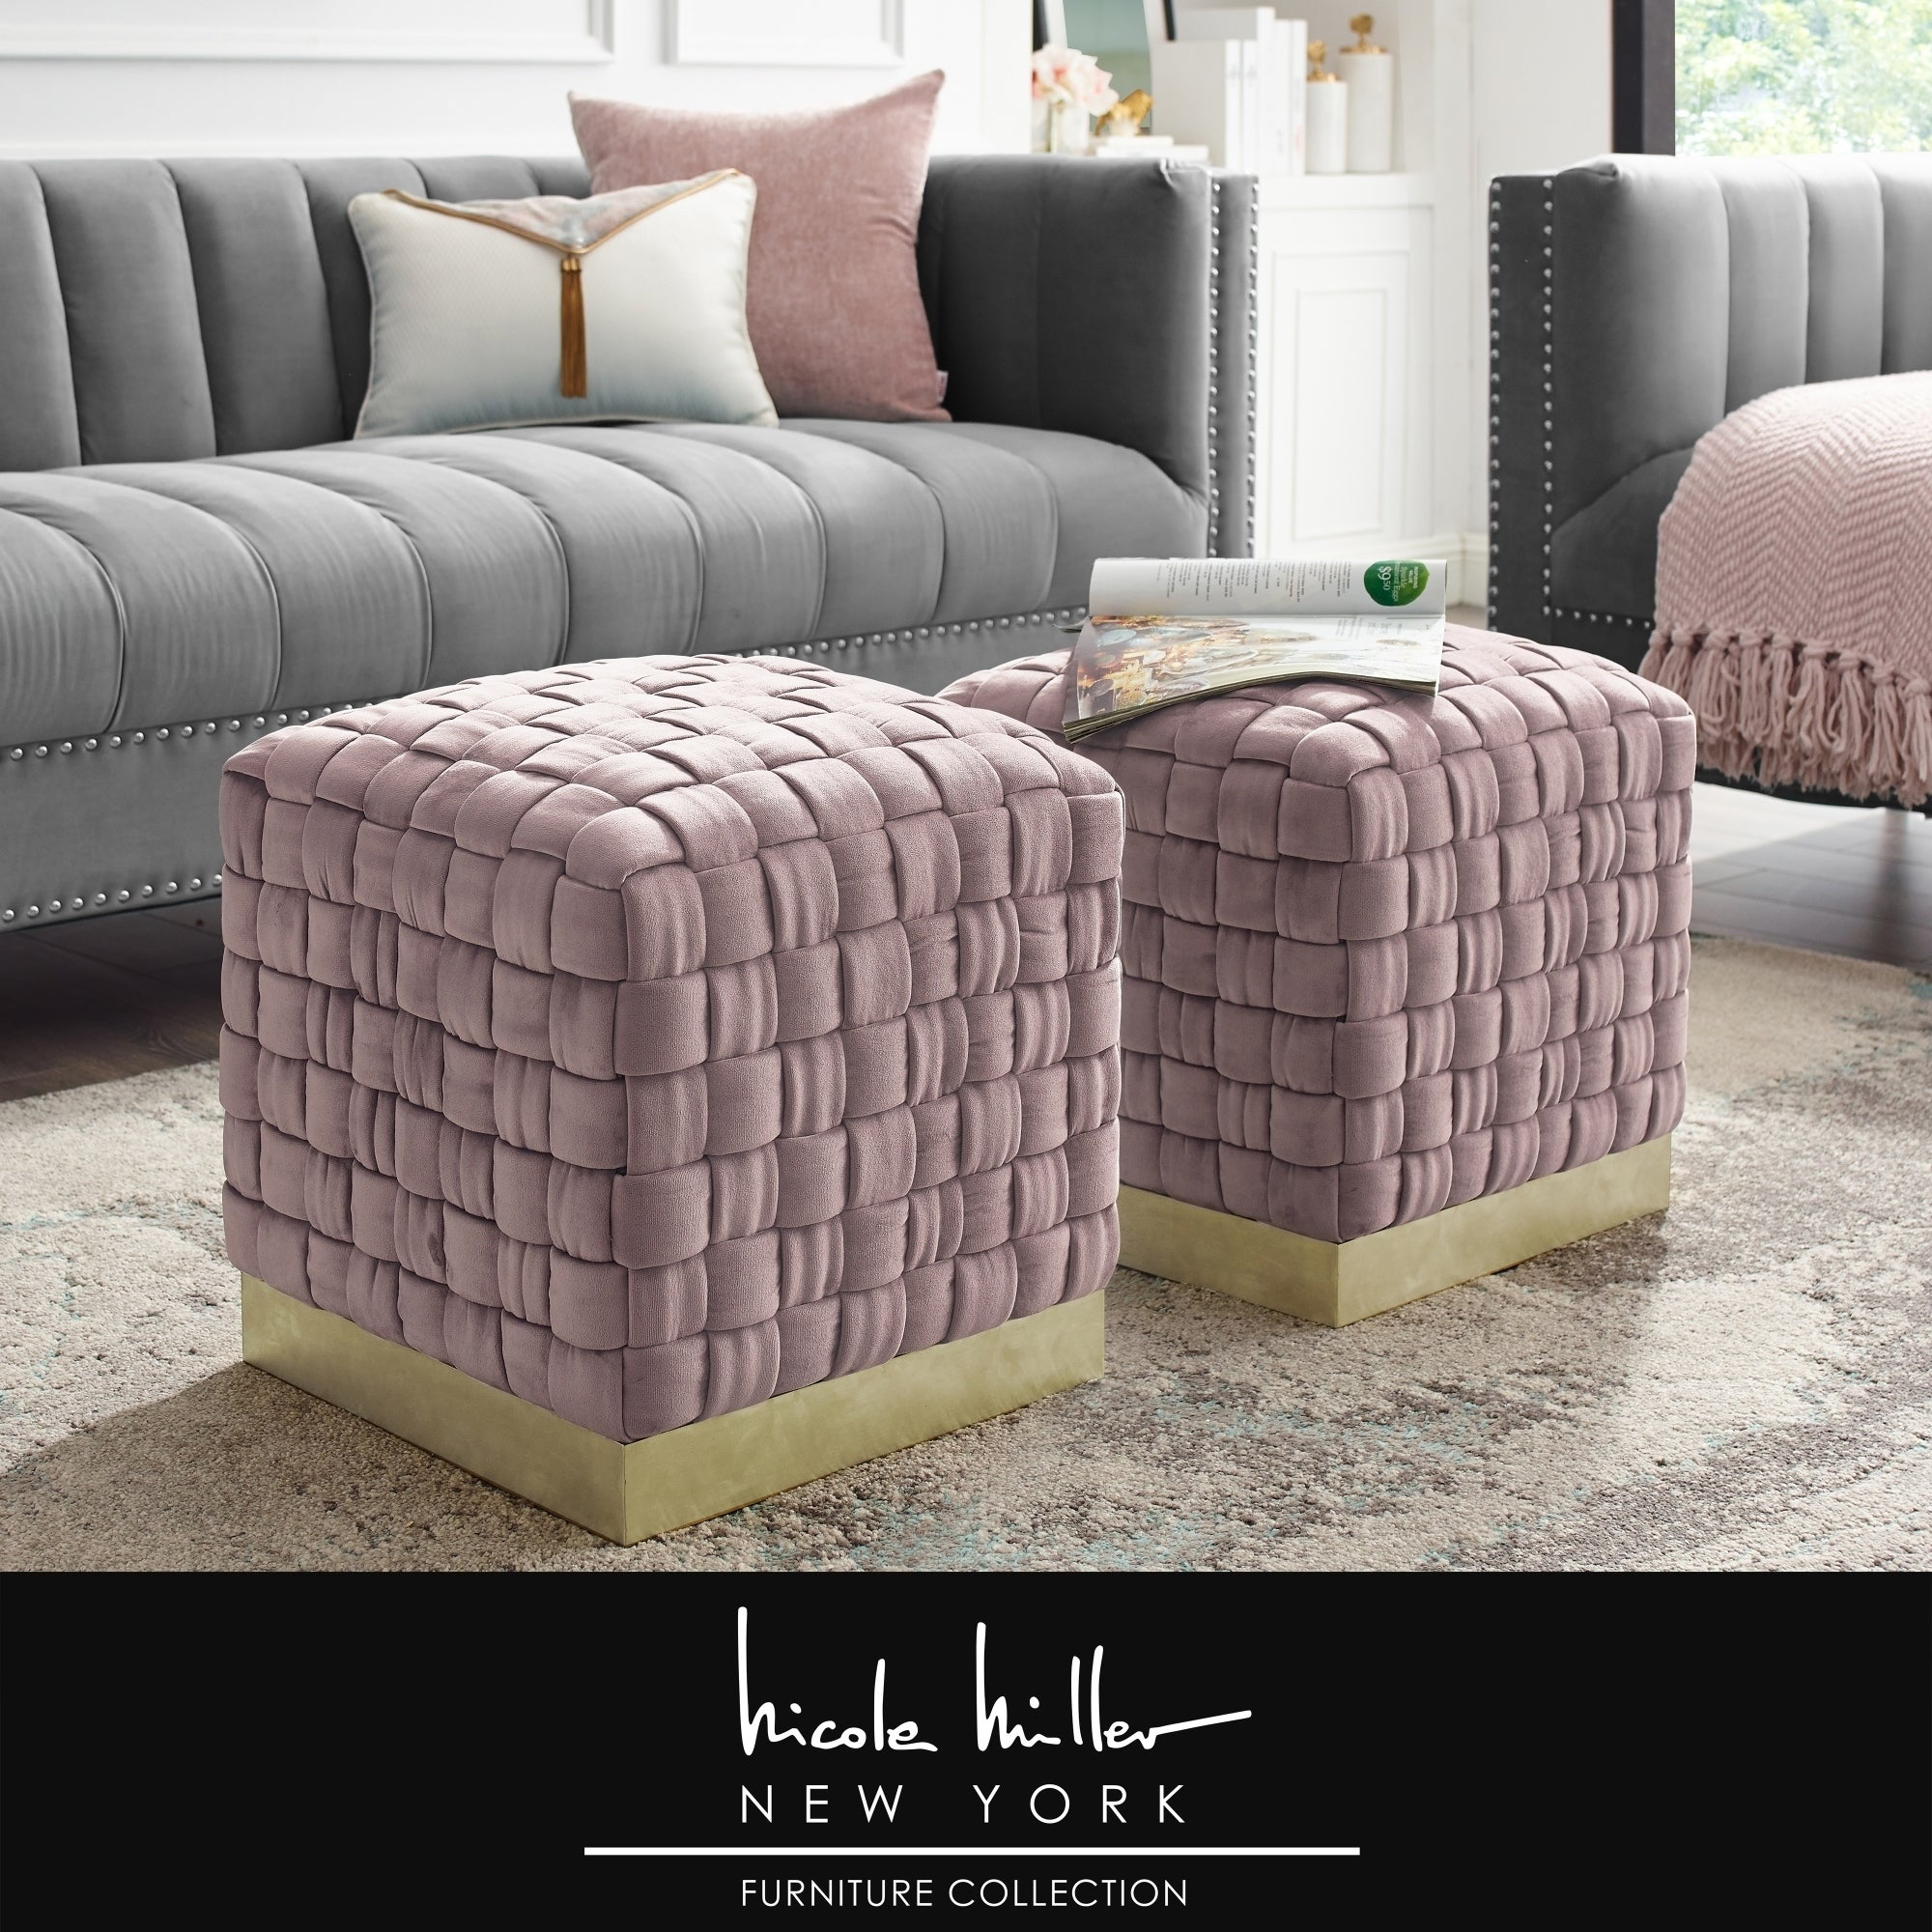 Nicole Miller Annamay Velvet Ottoman Hand Woven Stainless Steel, 1 Pc with regard to 4 Piece Handwoven Wheel Wall Decor Sets (Image 27 of 30)